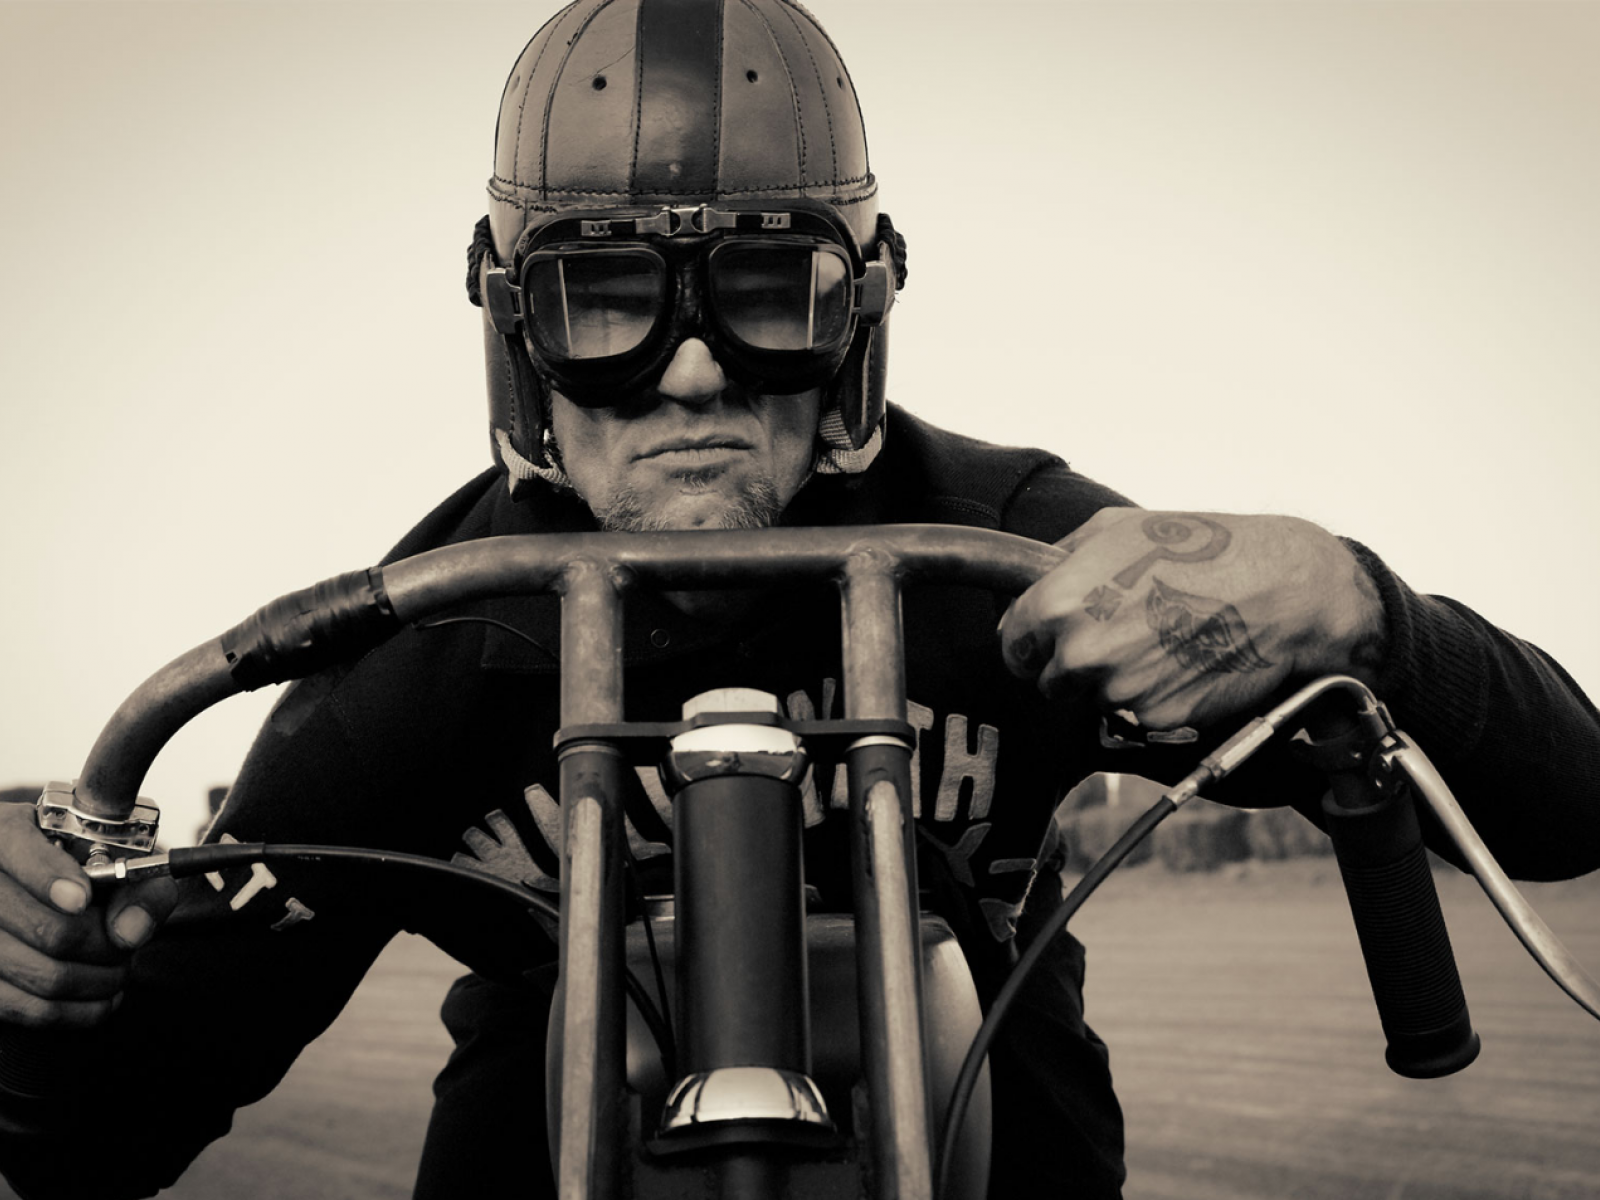 Bryan is a master of Americana. His clients include Harley Davidson, Coca-Cola and Choppers Inc. Bryan's intimate photos capture the nuances of the motorcycling community and offer his audience a vicarious look into an iconic subculture.